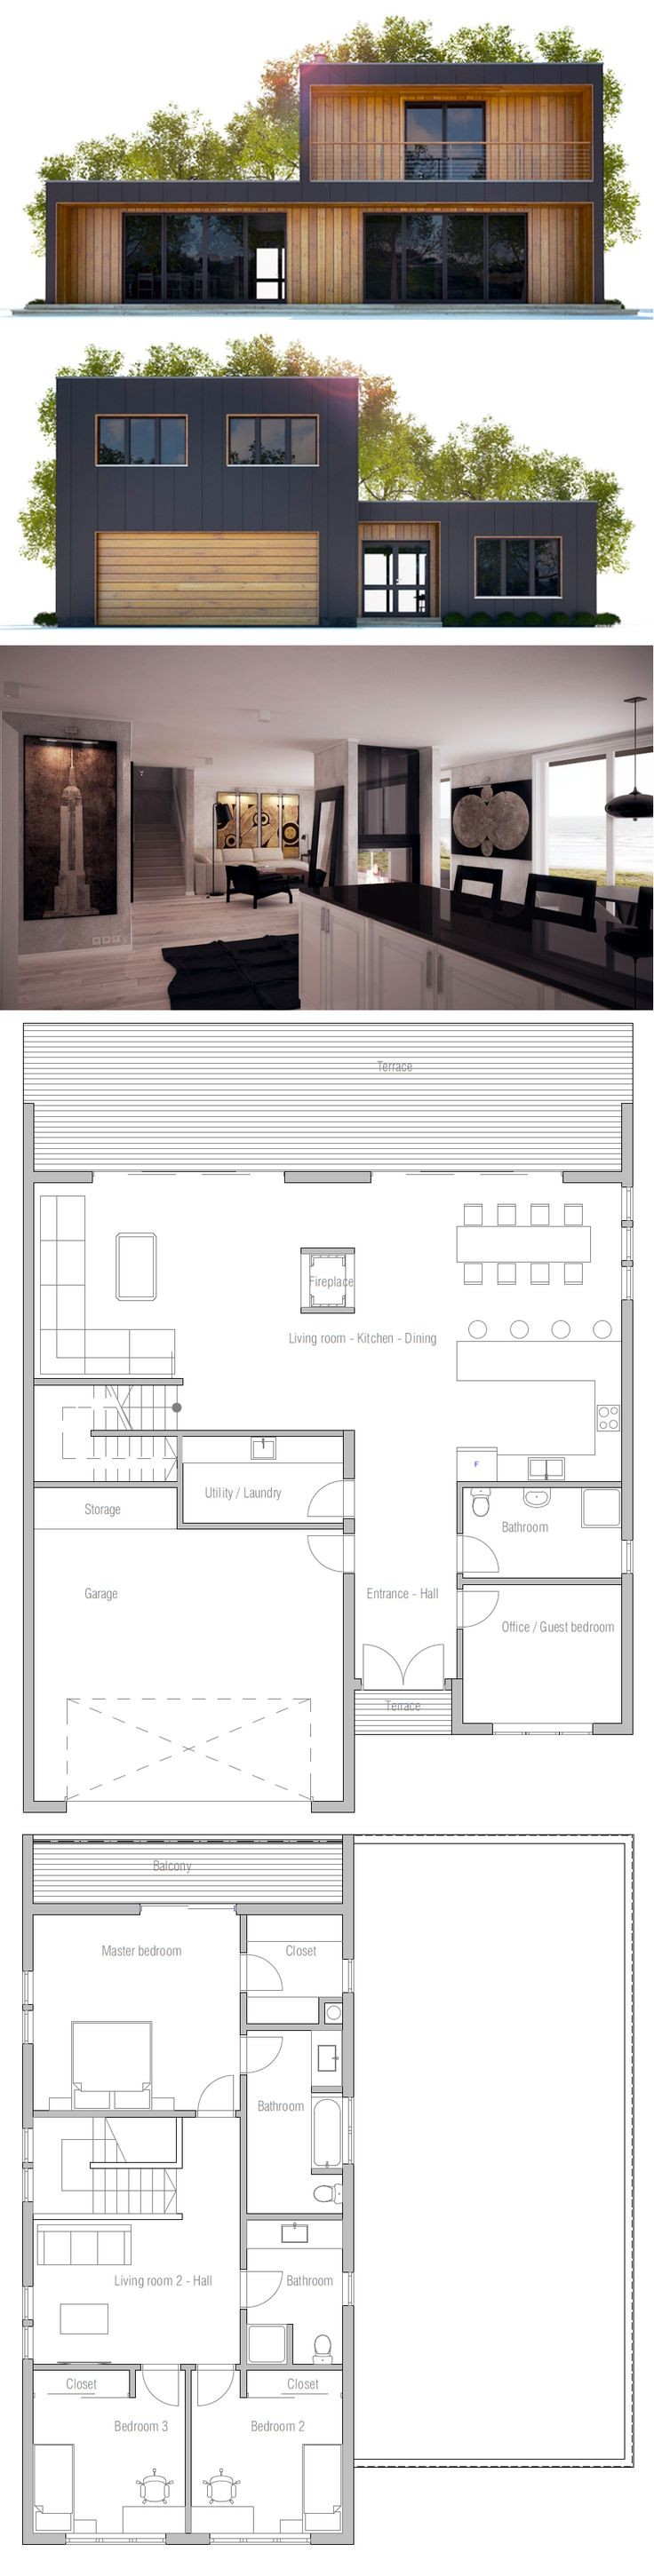 Best 25 Modern floor plans ideas on Pinterest